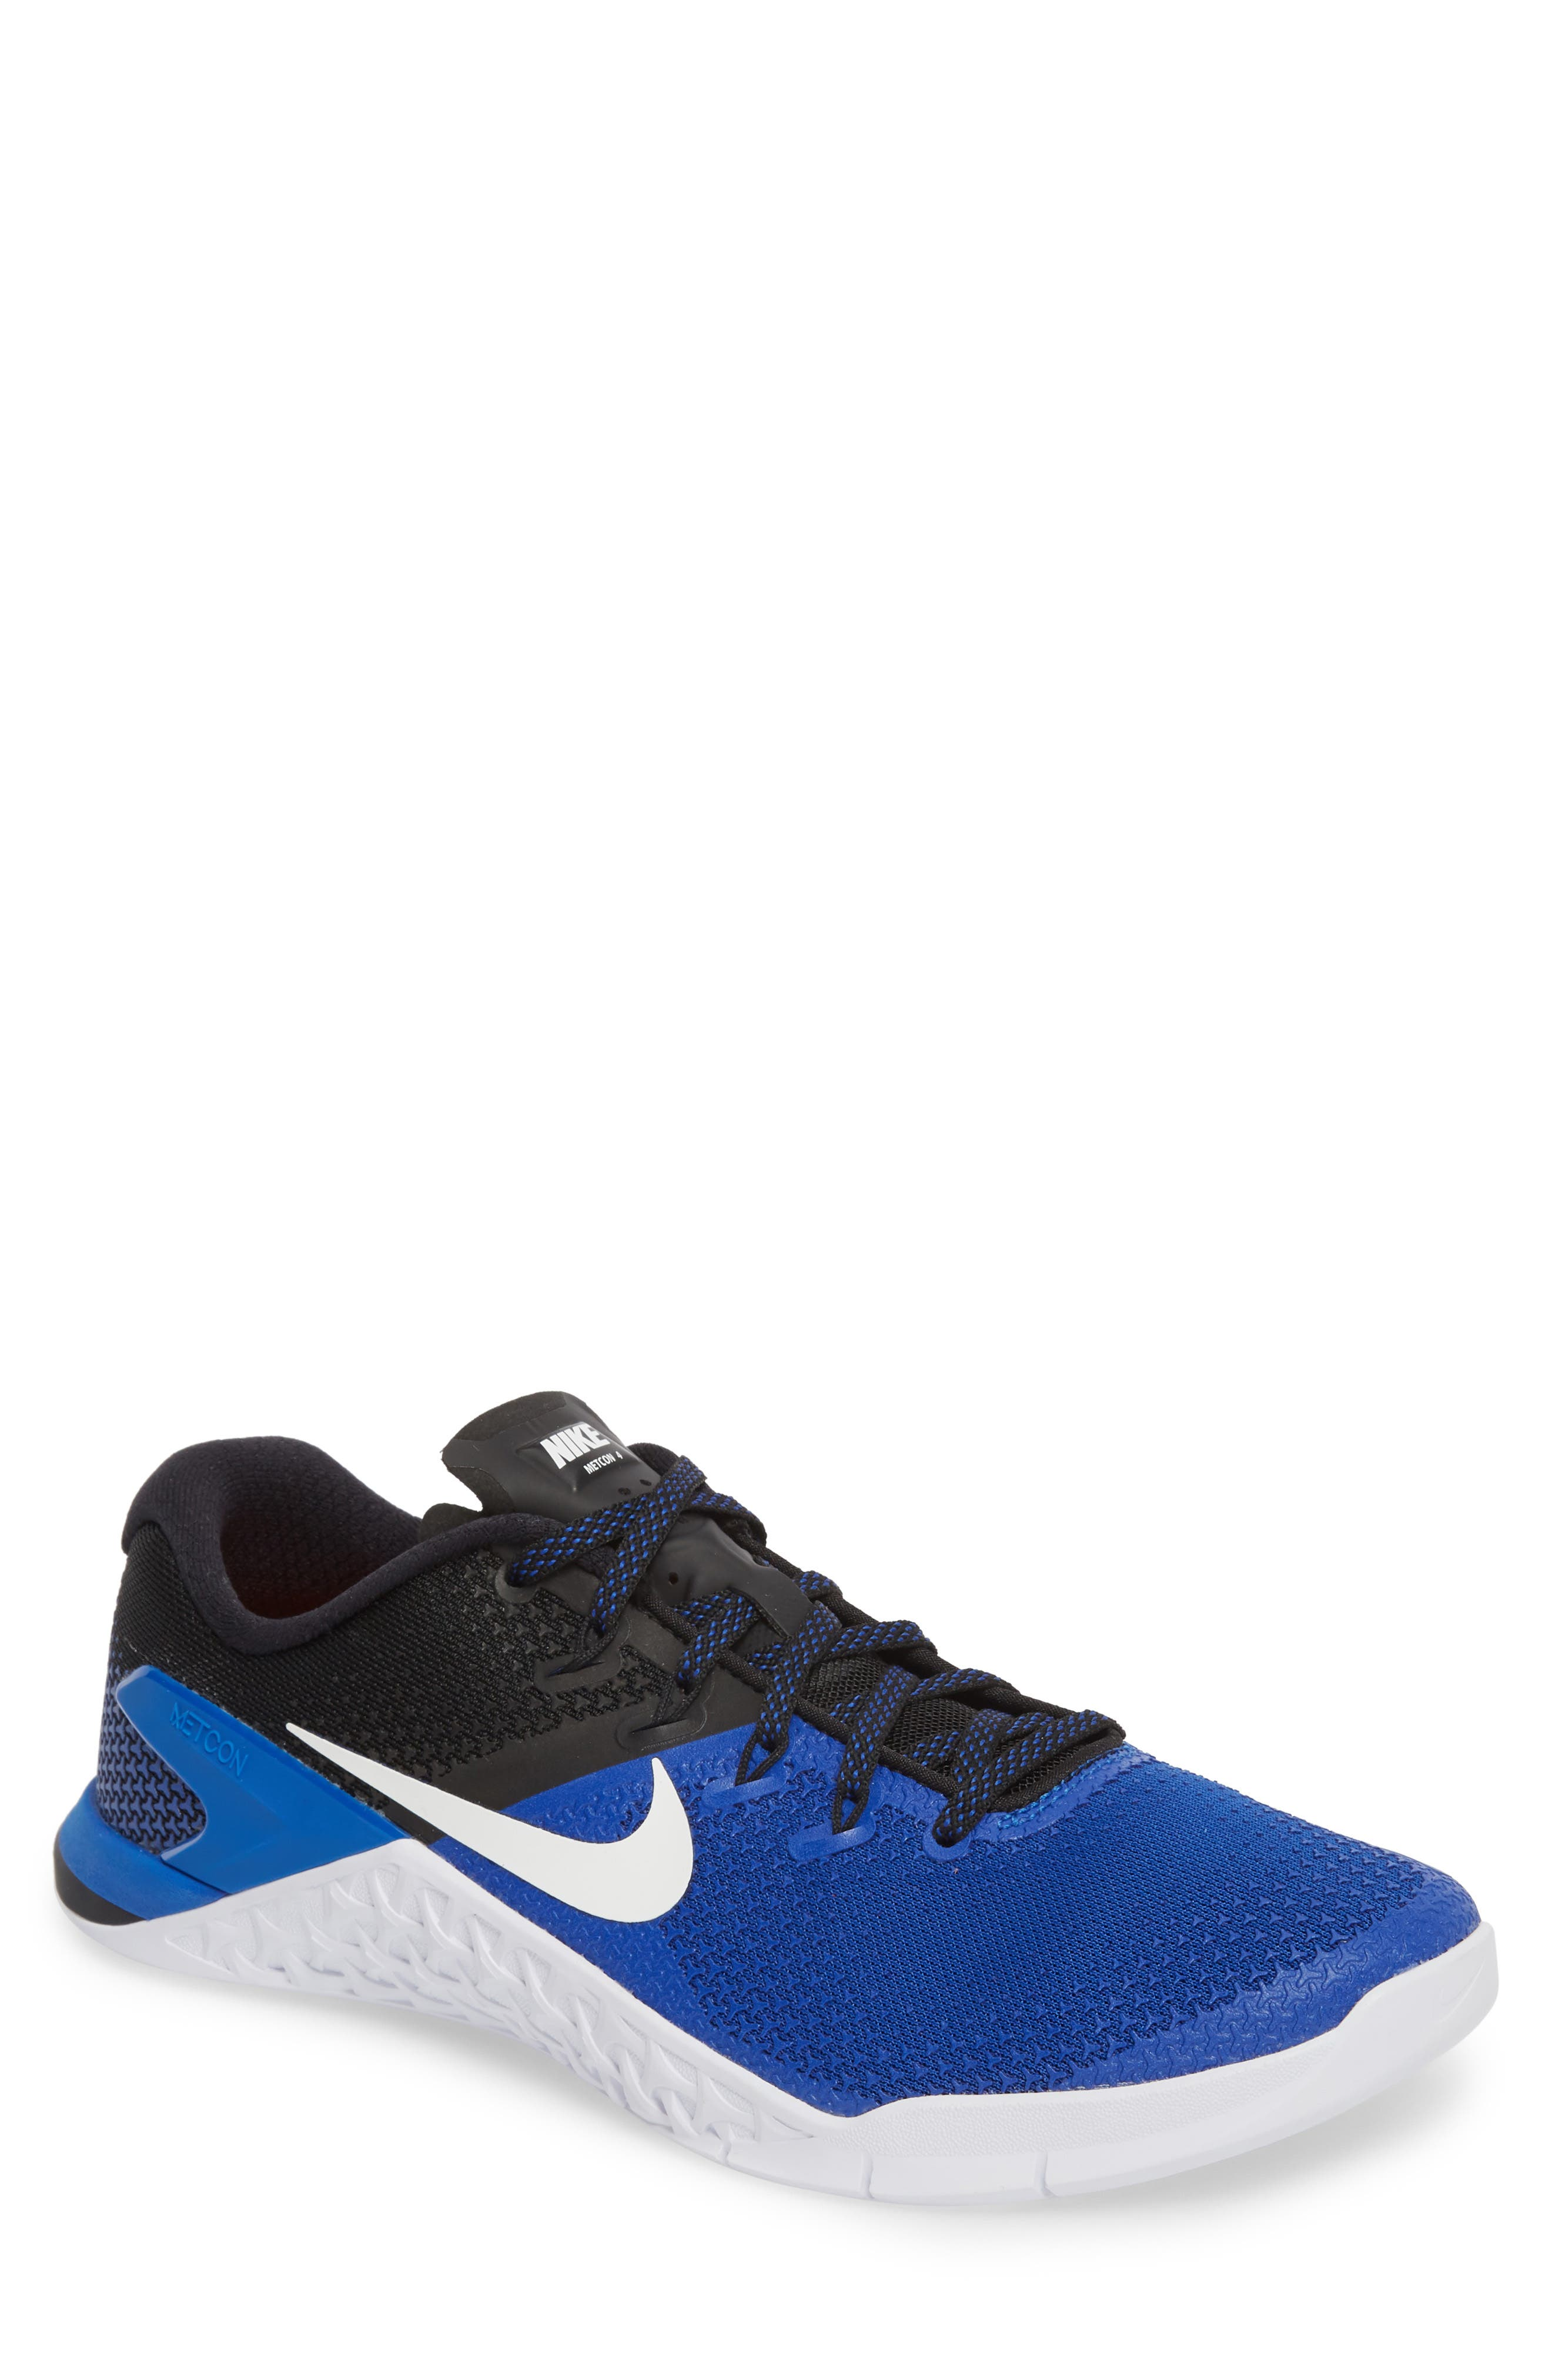 Metcon 4 Training Shoe,                         Main,                         color, GAME ROYAL/ WHITE/ BLACK